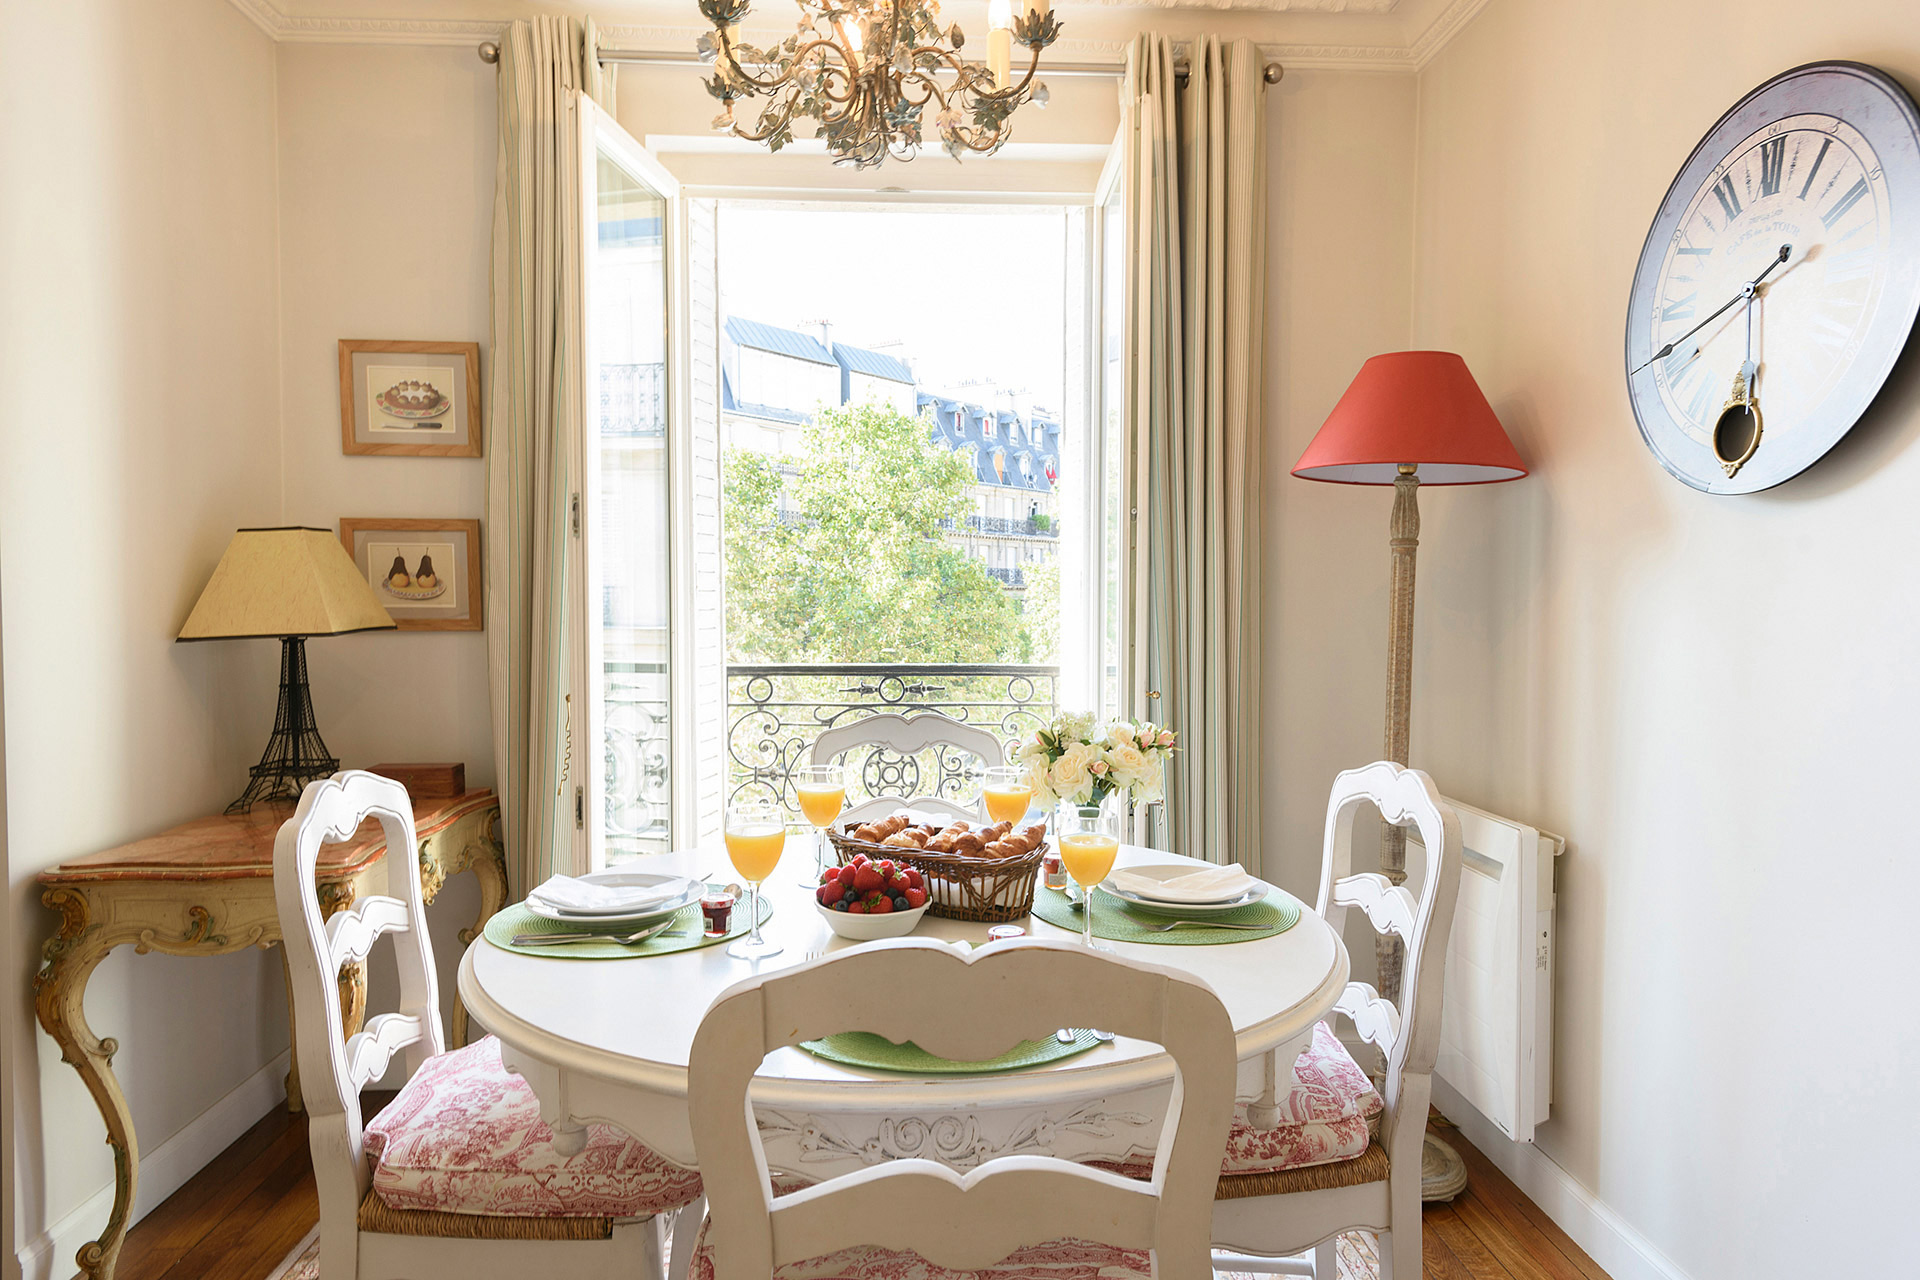 Dining table with a view in the Clairette vacation rental offered by Paris Perfect